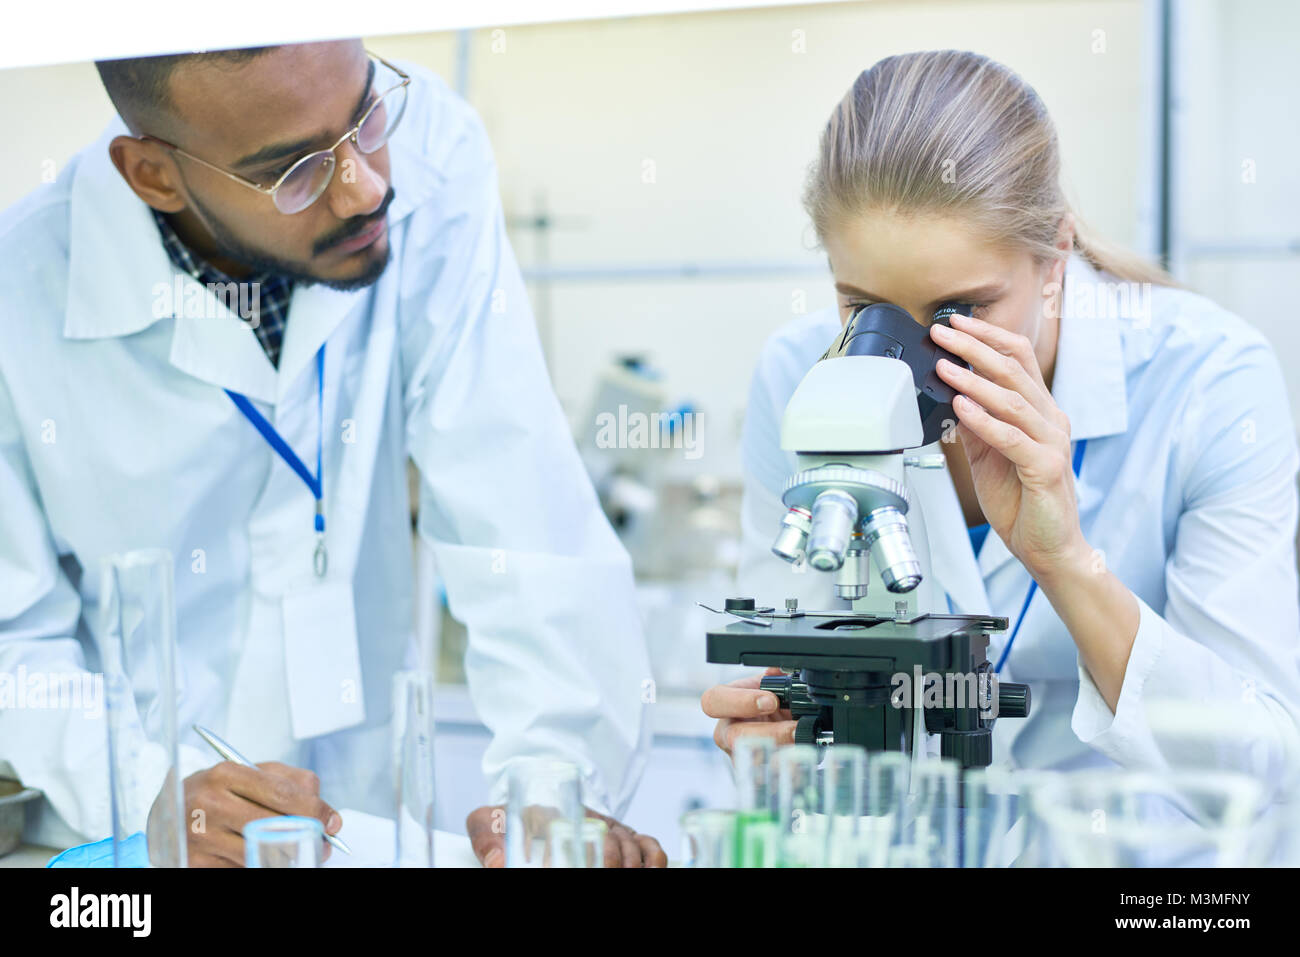 Scientists Doing Research in Lab - Stock Image